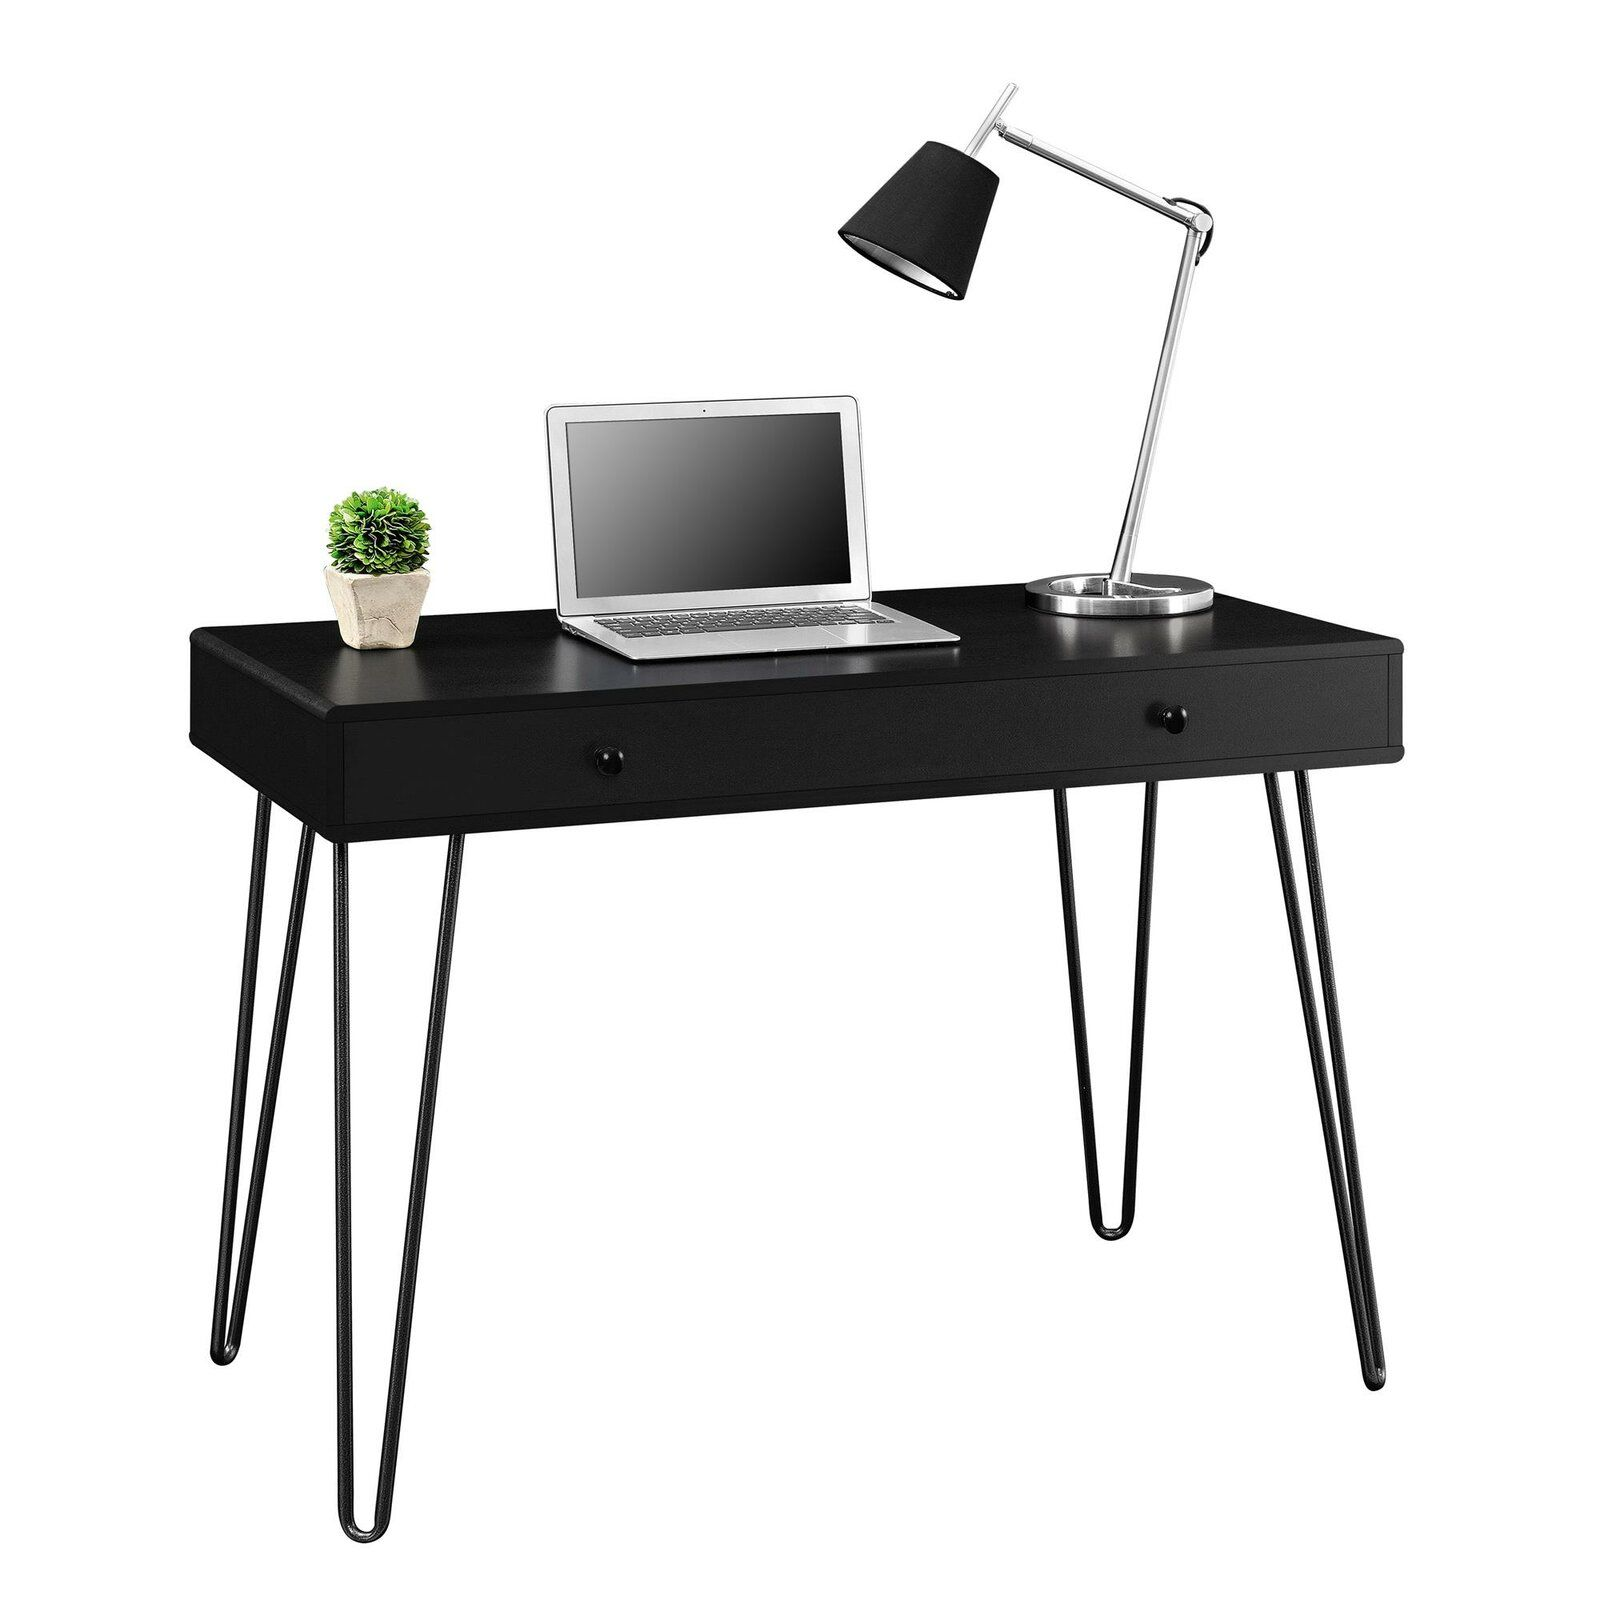 Folkston Desk Retro Desk Desk With Drawers Writing Desk With Drawers